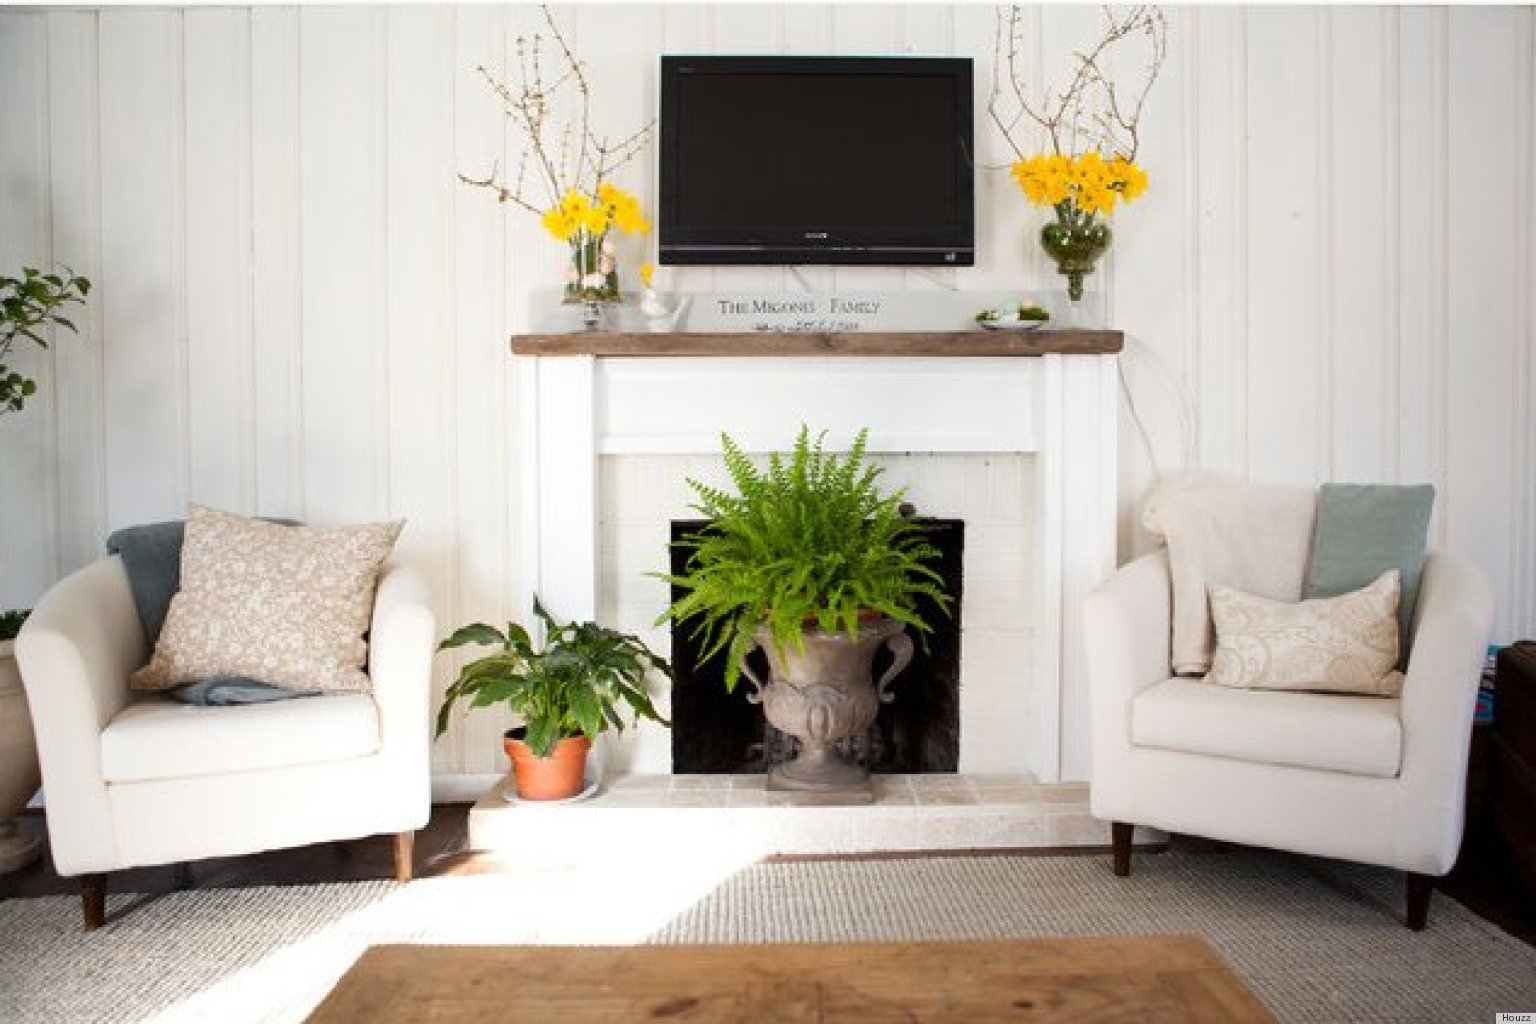 10 ways to decorate your fireplace in the summer since Fireplace design ideas